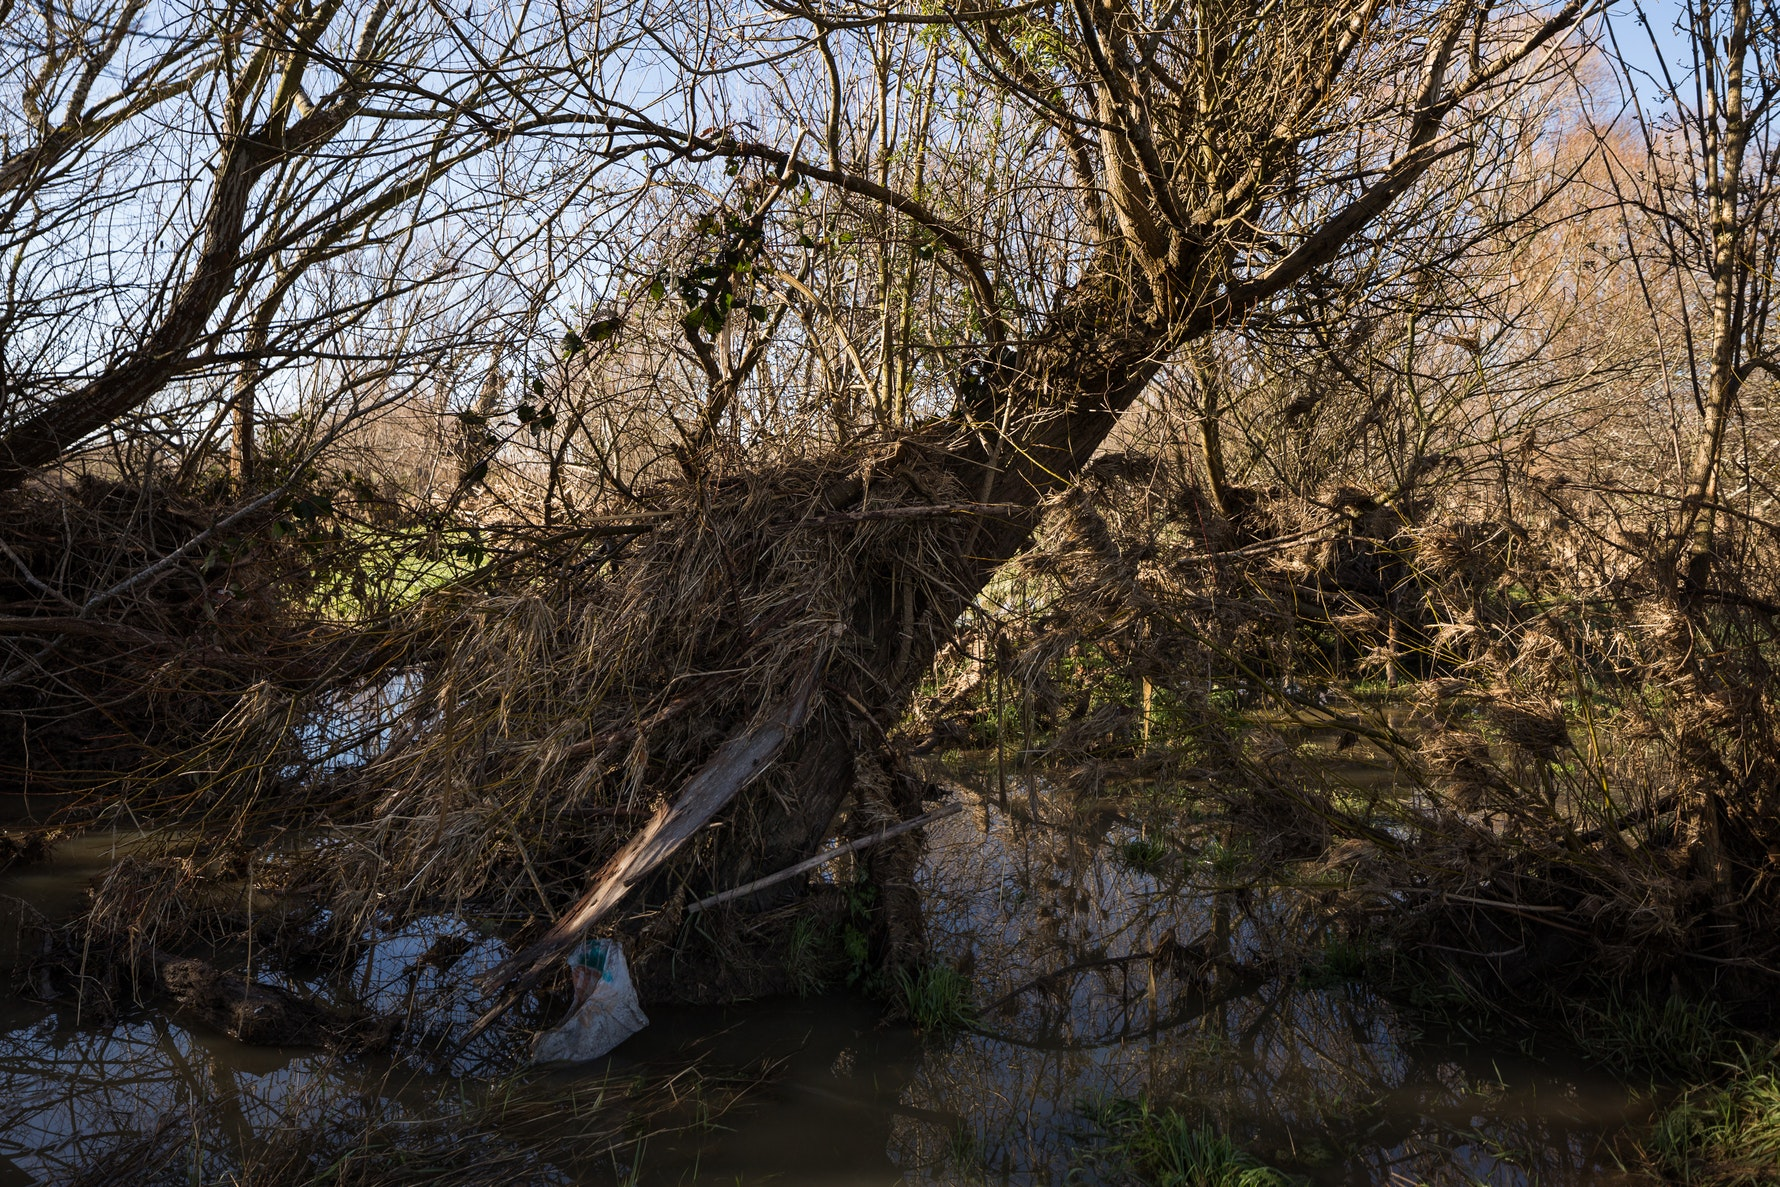 Litter After Flood, Coes Ford